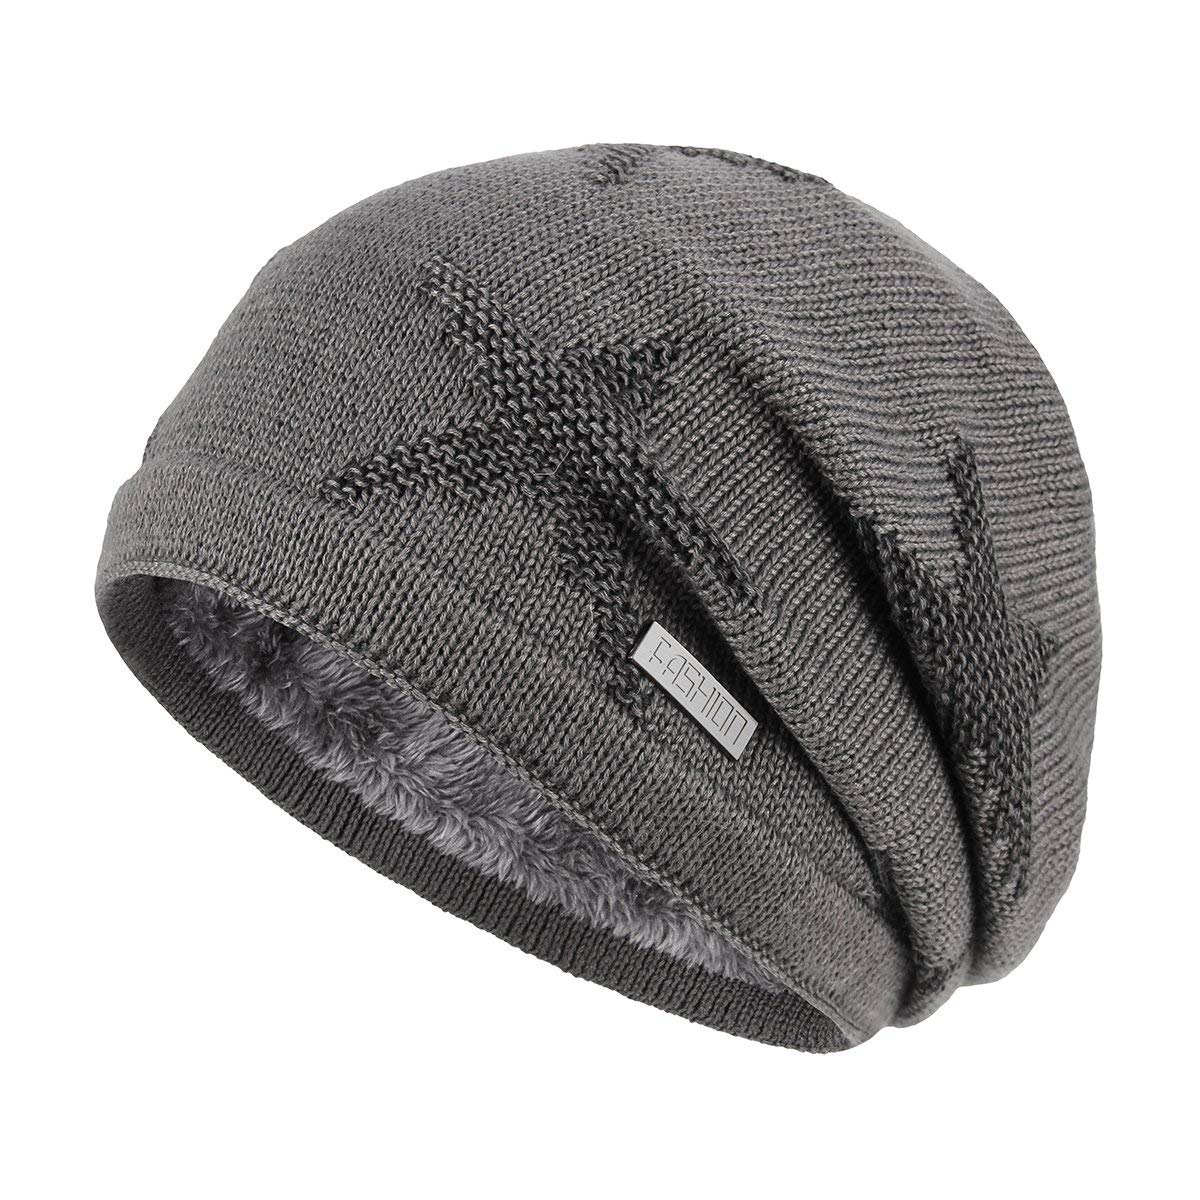 OMECHY Winter Knit Slouchy Beanie Hat Unisex Daily Warm Ski Skull Cap 4 Colors